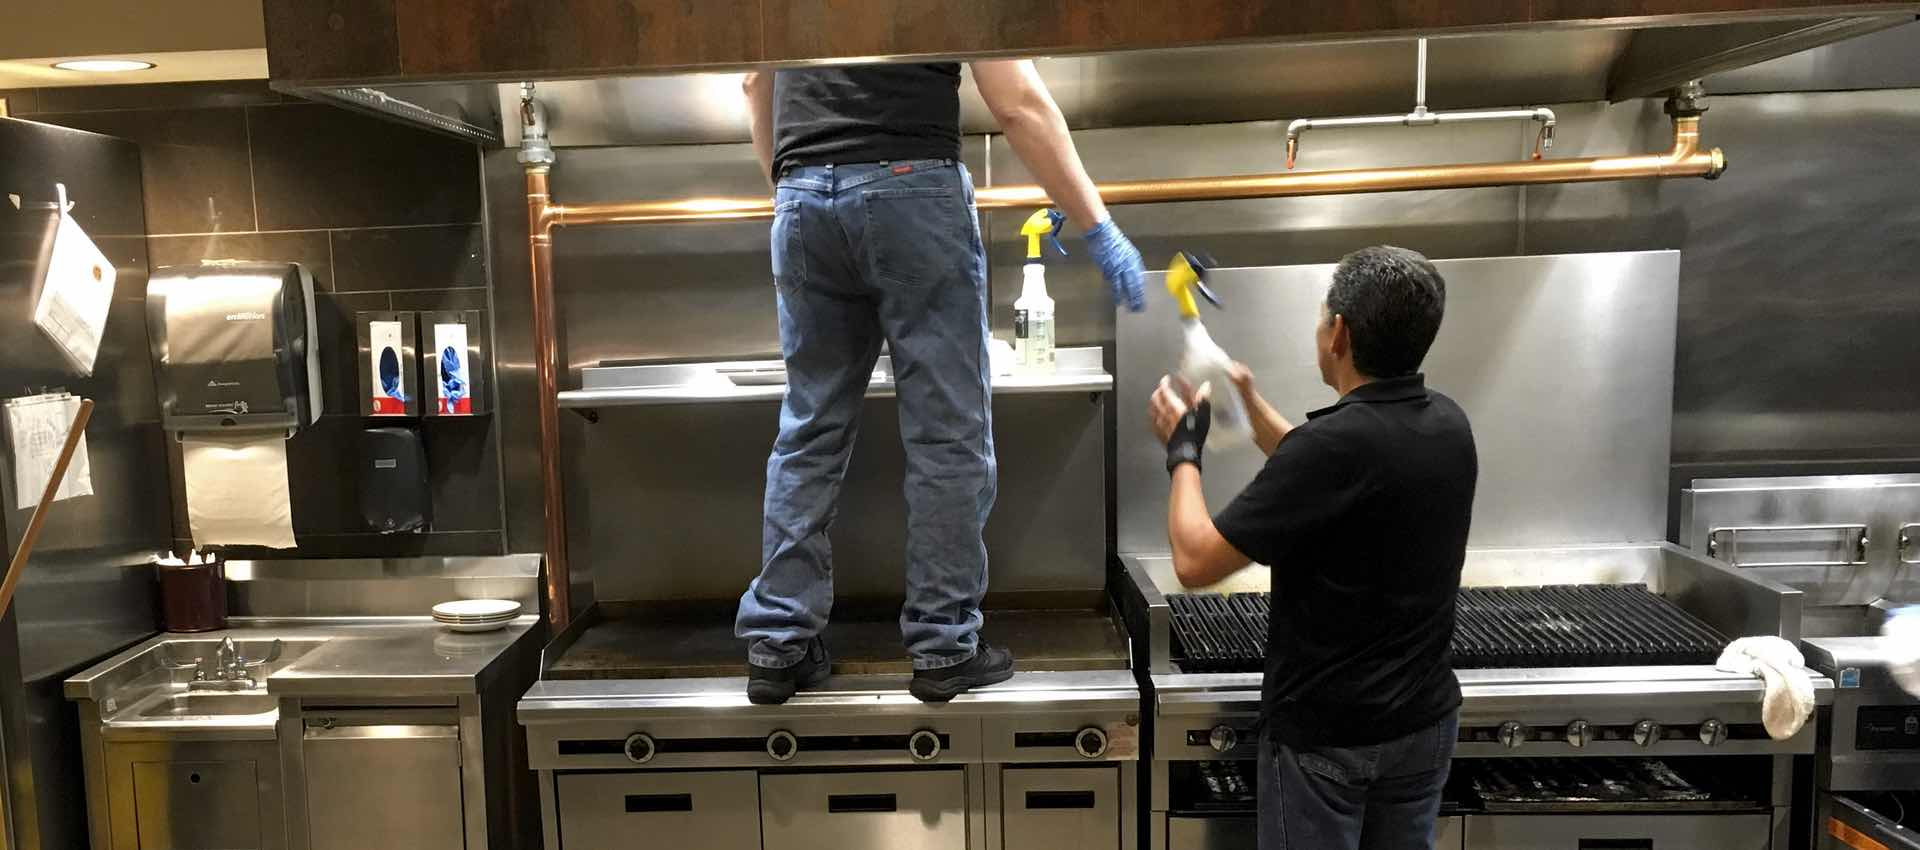 Vent Hood Cleaning Safety Tips for You & Your Crew